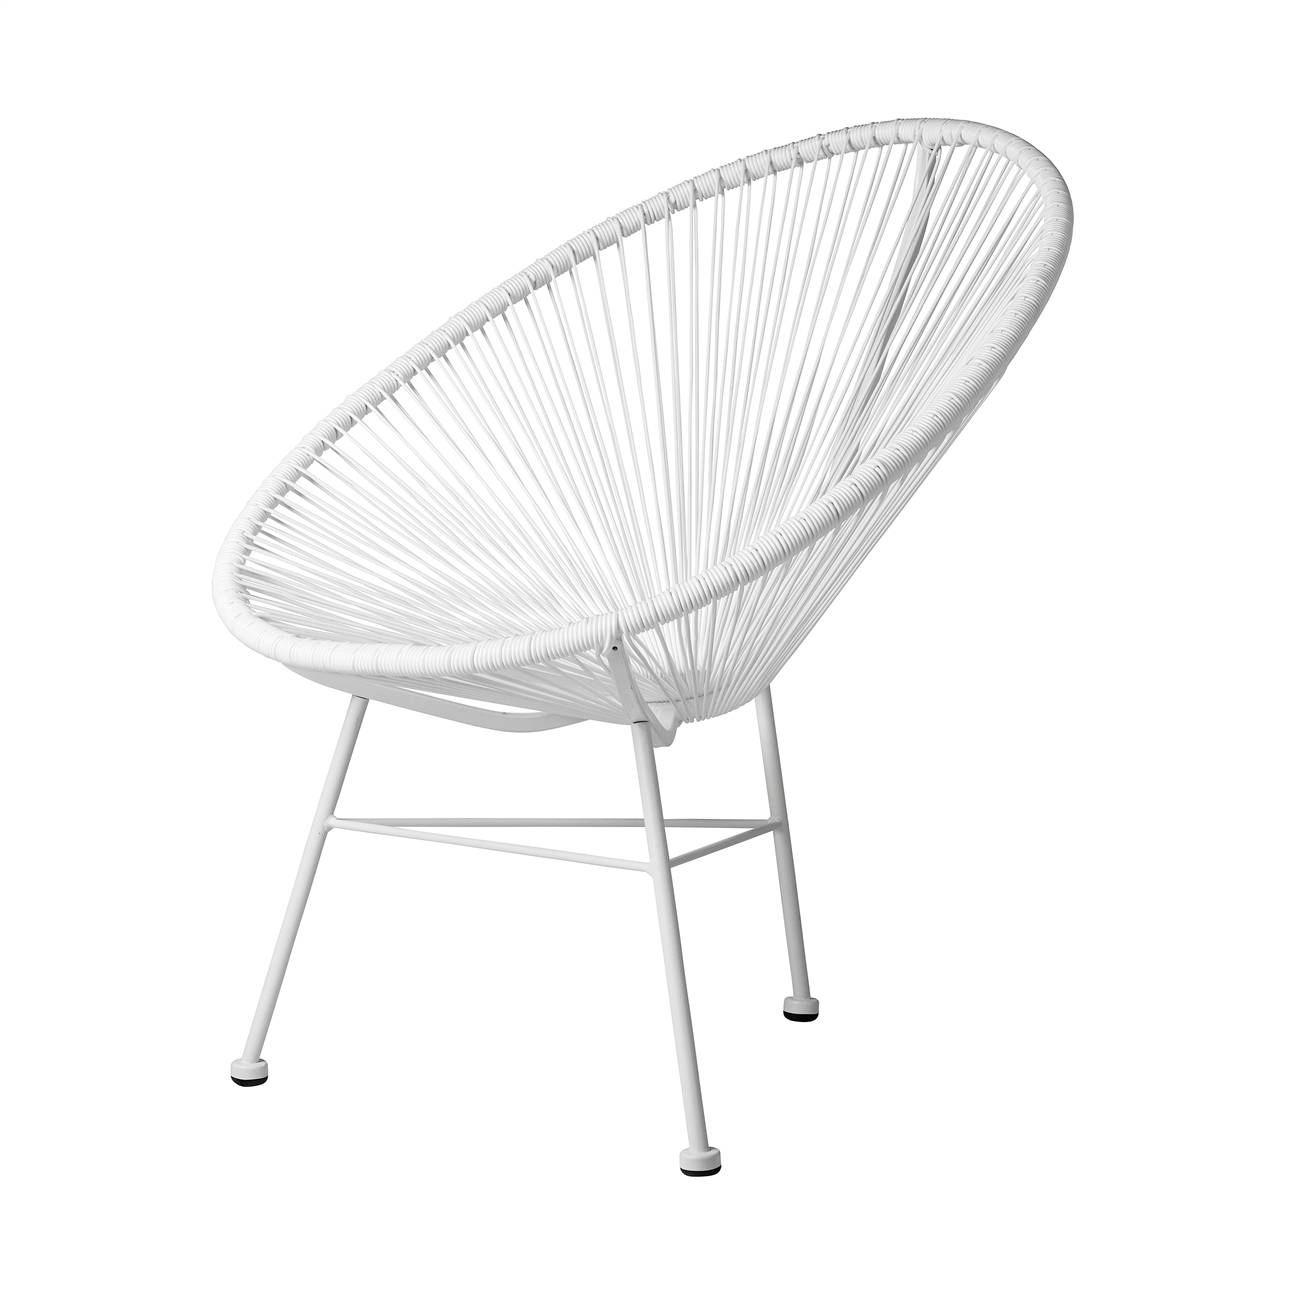 White Outdoor Lounge Chair Acapulco Lounge Chair In White The Khazana Home Austin Furniture Store